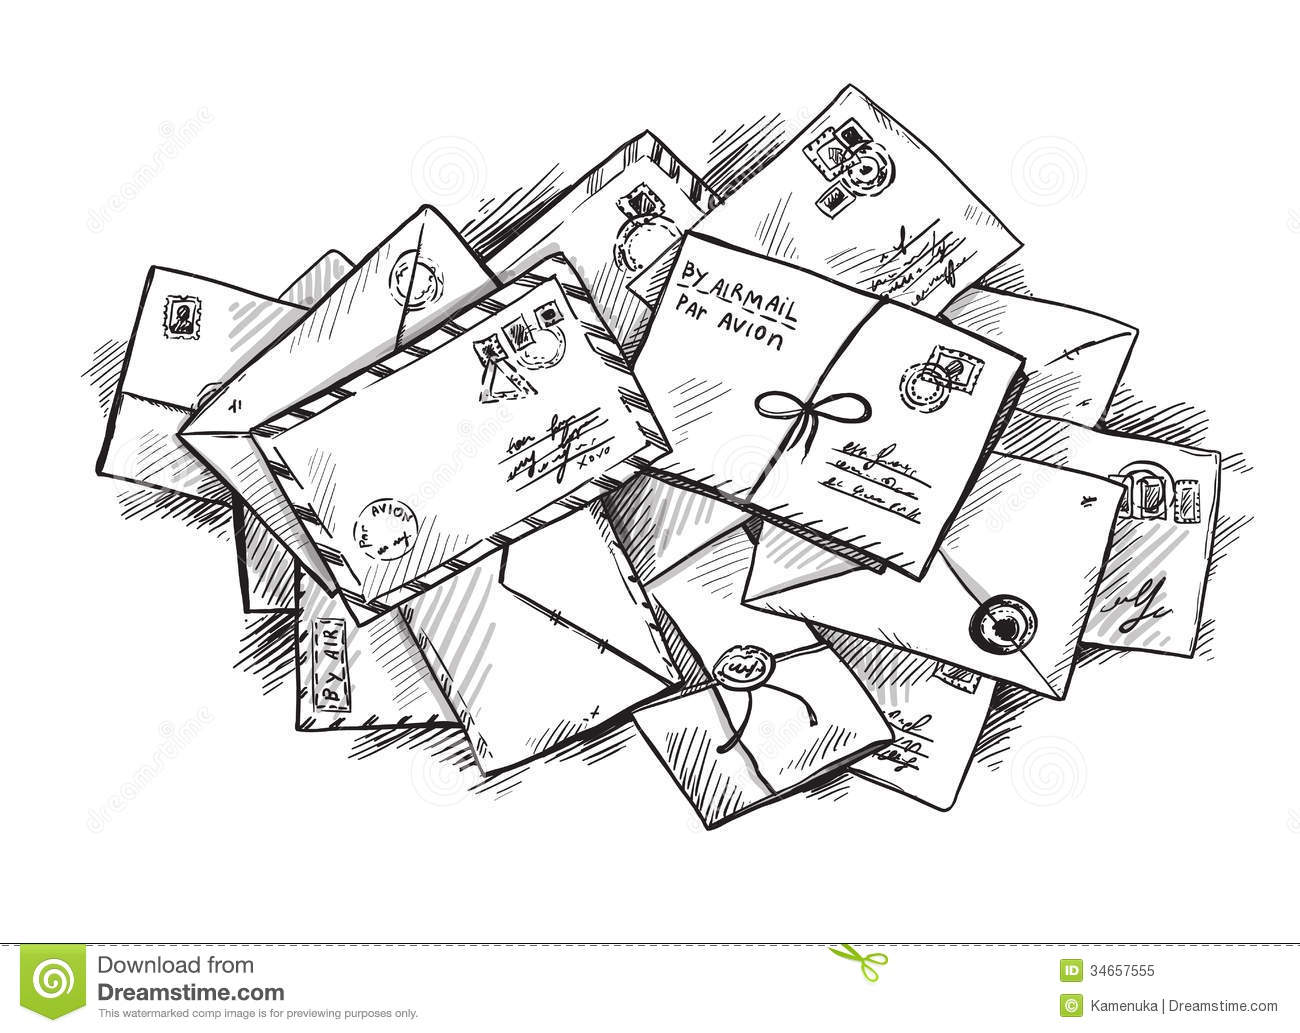 Royalty Free Stock Photo Pile Letters Retro Doodle Drawing Vector Eps Image34657555 further Mr Strong Stand Up also School Door Clip Art additionally 1193356 32341147776 also Animated 20gifs 20Aladdin 20Alice 20Bambi 20Cinderella 20Dalmatians 20Pinocchio 20Oz 20Peter 20Pan 20Sleeping 20Beauty 20Snow 20White. on opened cartoon letter